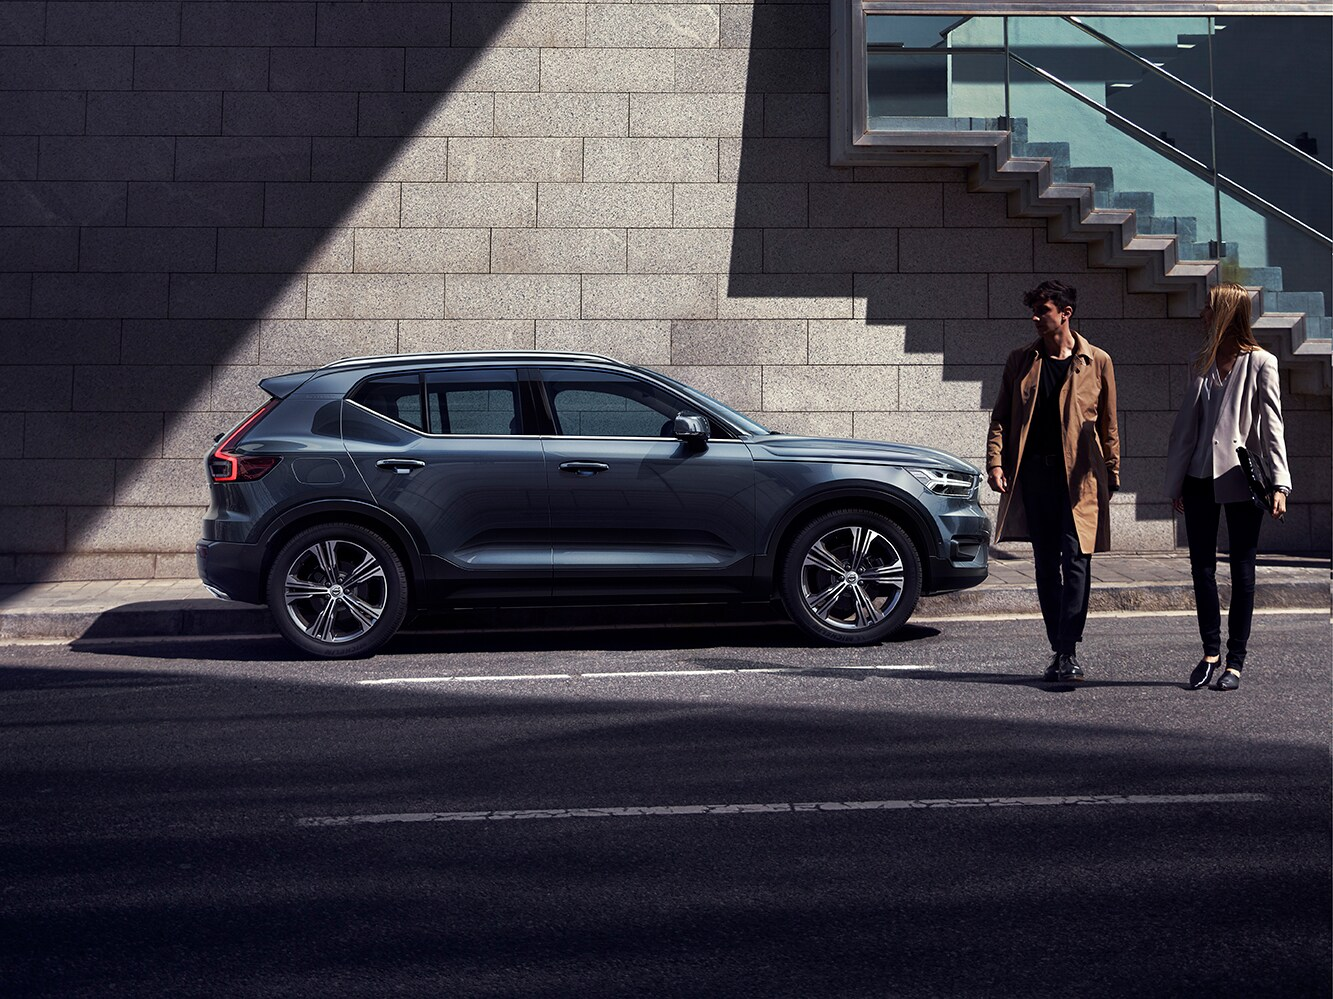 The luxurious Volvo XC40 Inscription parked on a street with two young people